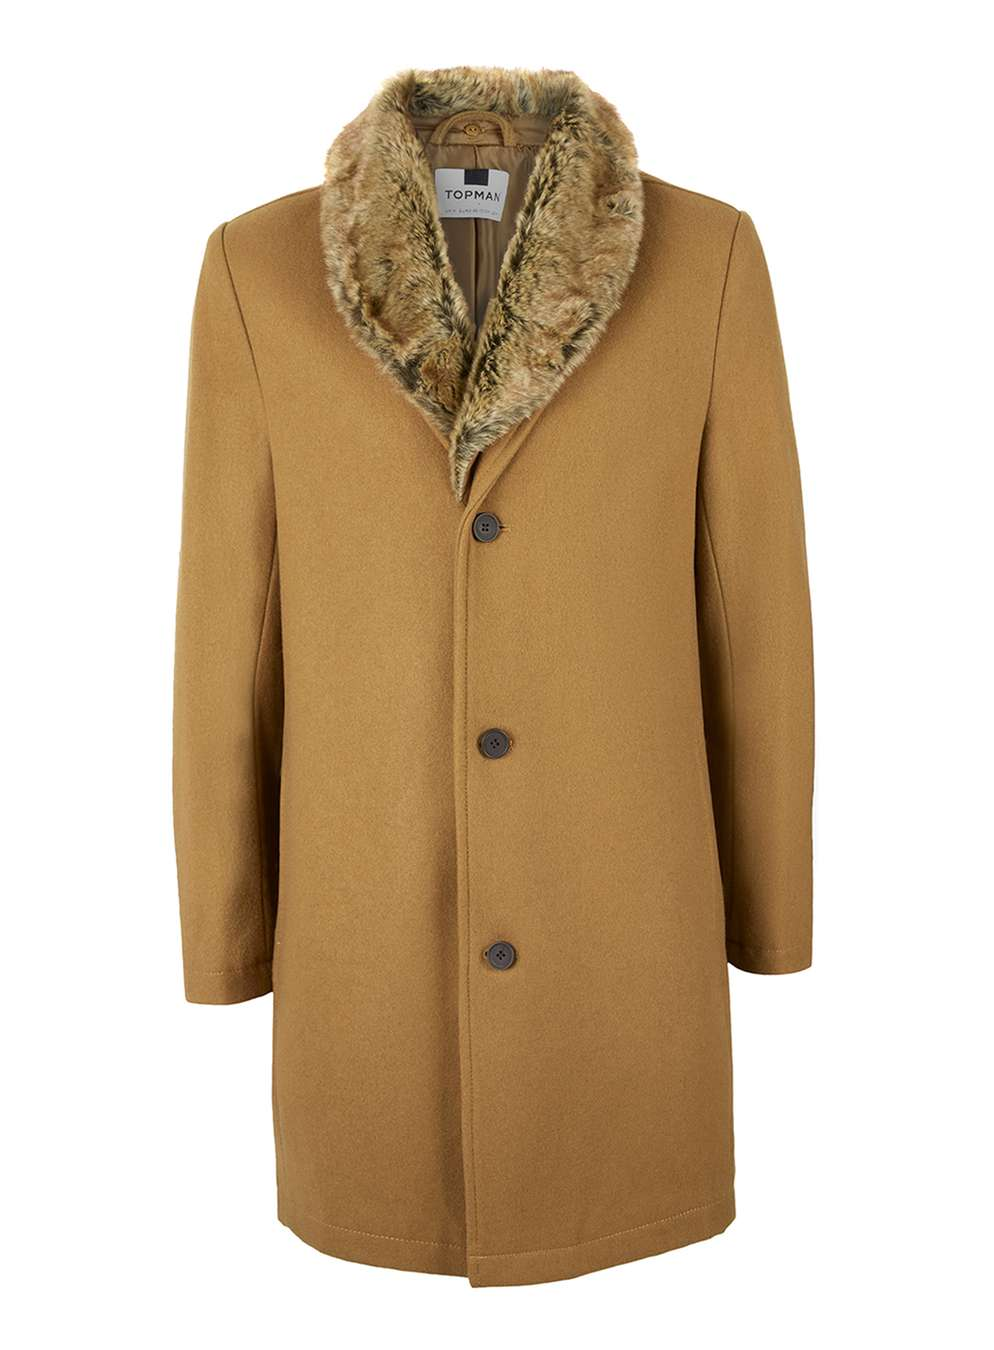 sam-c-perry-5-date-night-looks-for-valentines-day-topman-overcoat.jpg